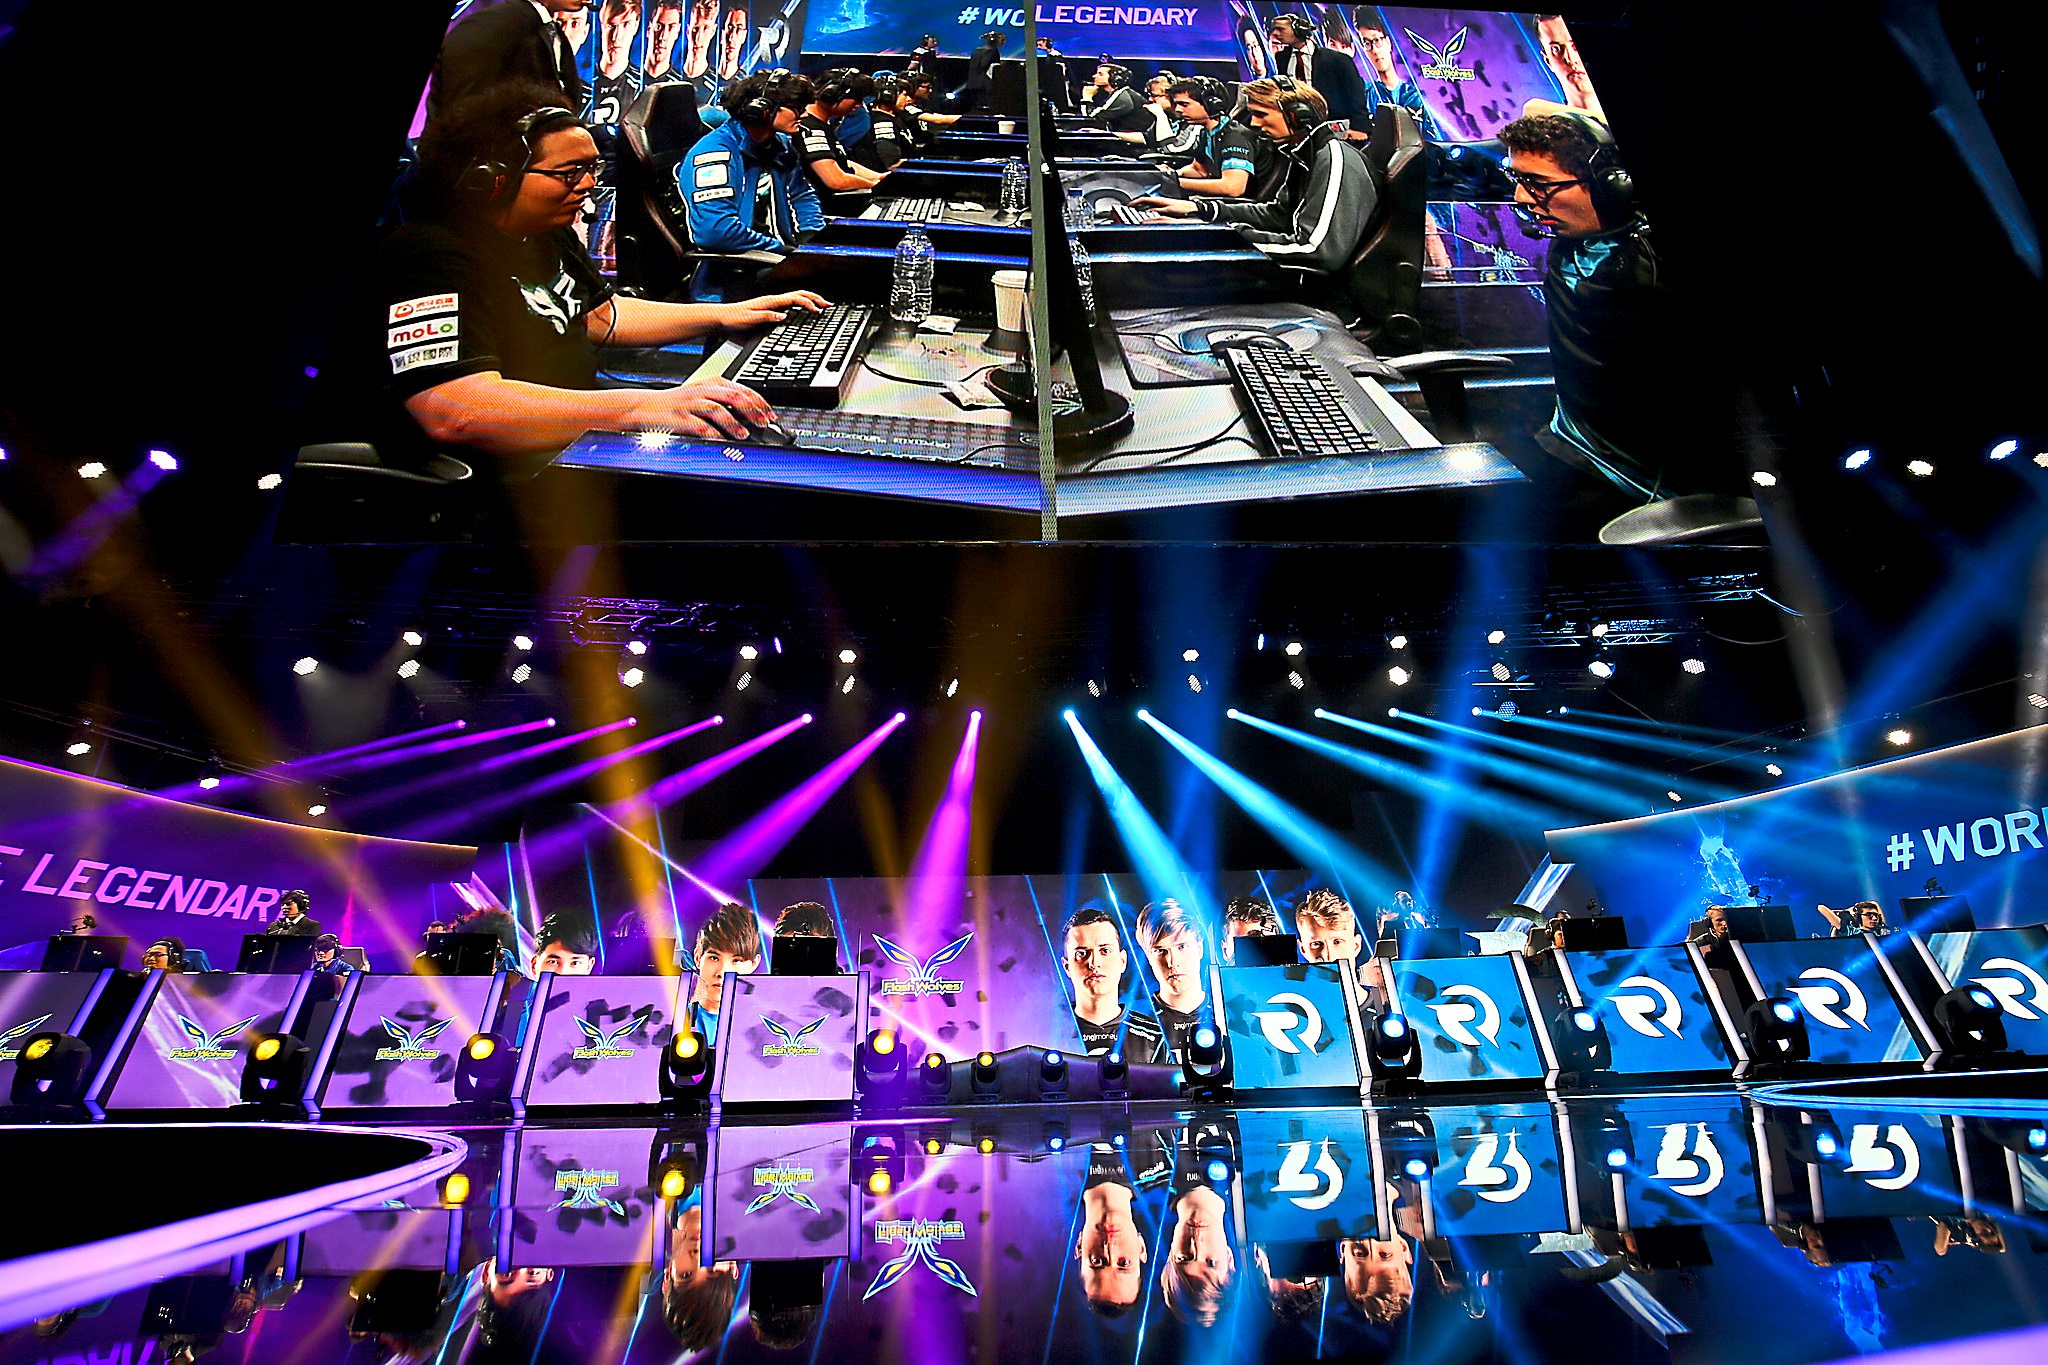 Game on: eSport major tournaments are now a common sight in United States, Europe and China, hosted in large arenas housing thousands of spectators. Photo credit: Riot Games